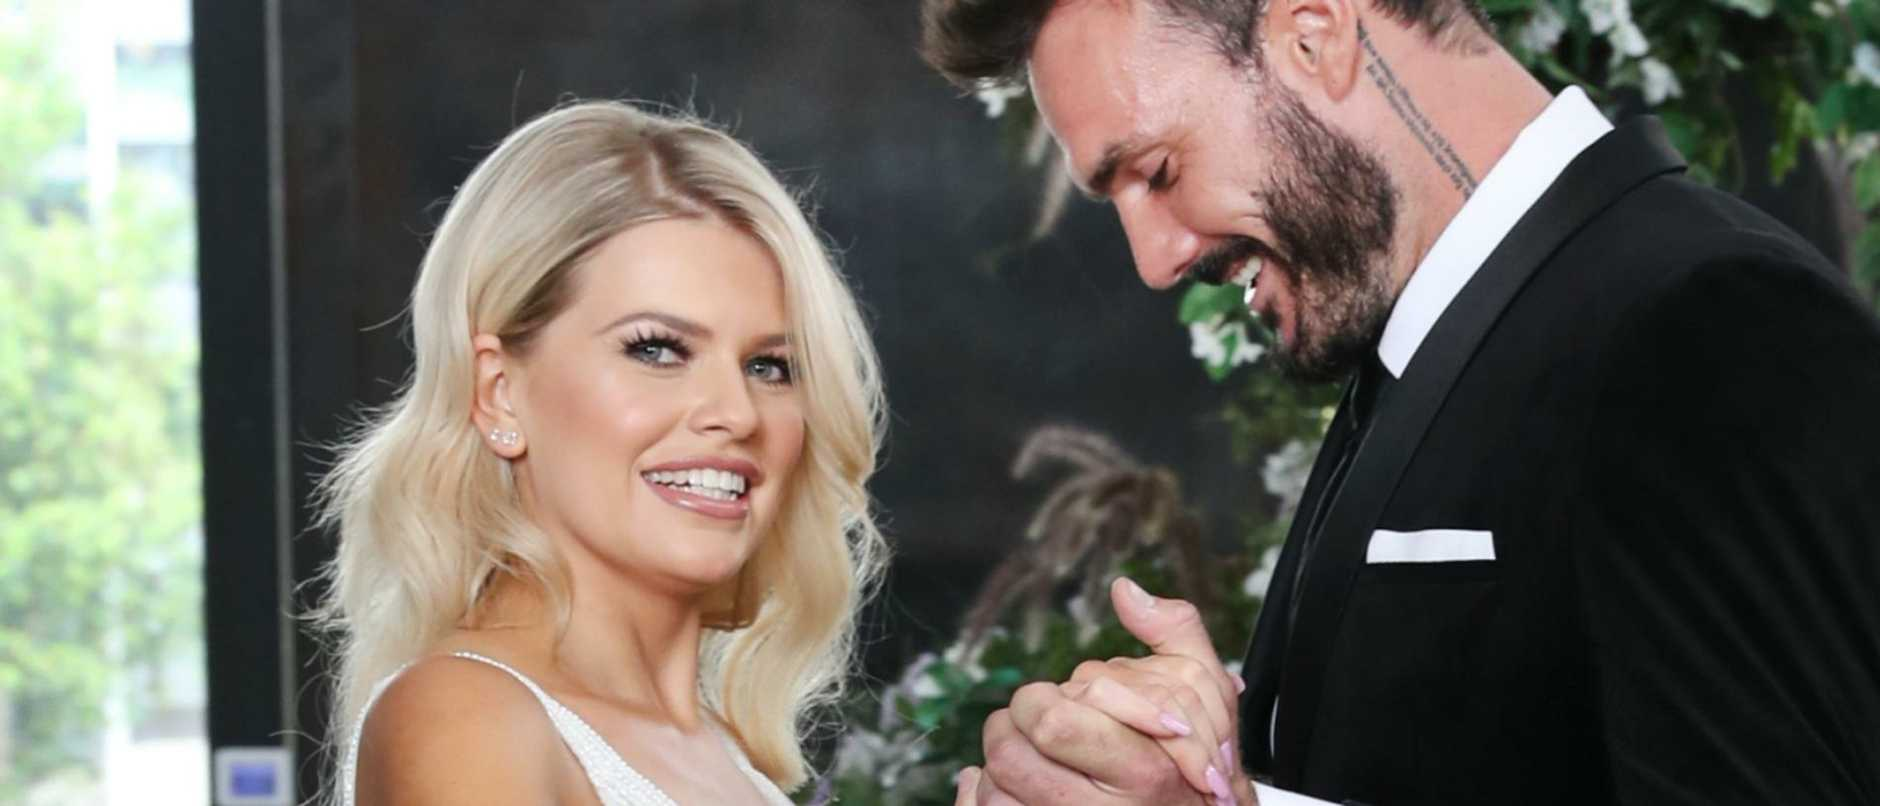 After getting locked in a heated argument on The Bachelor, Kaitlyn Hoppe's past has been revealed, including her link to an NRL star and a multi-millionaire